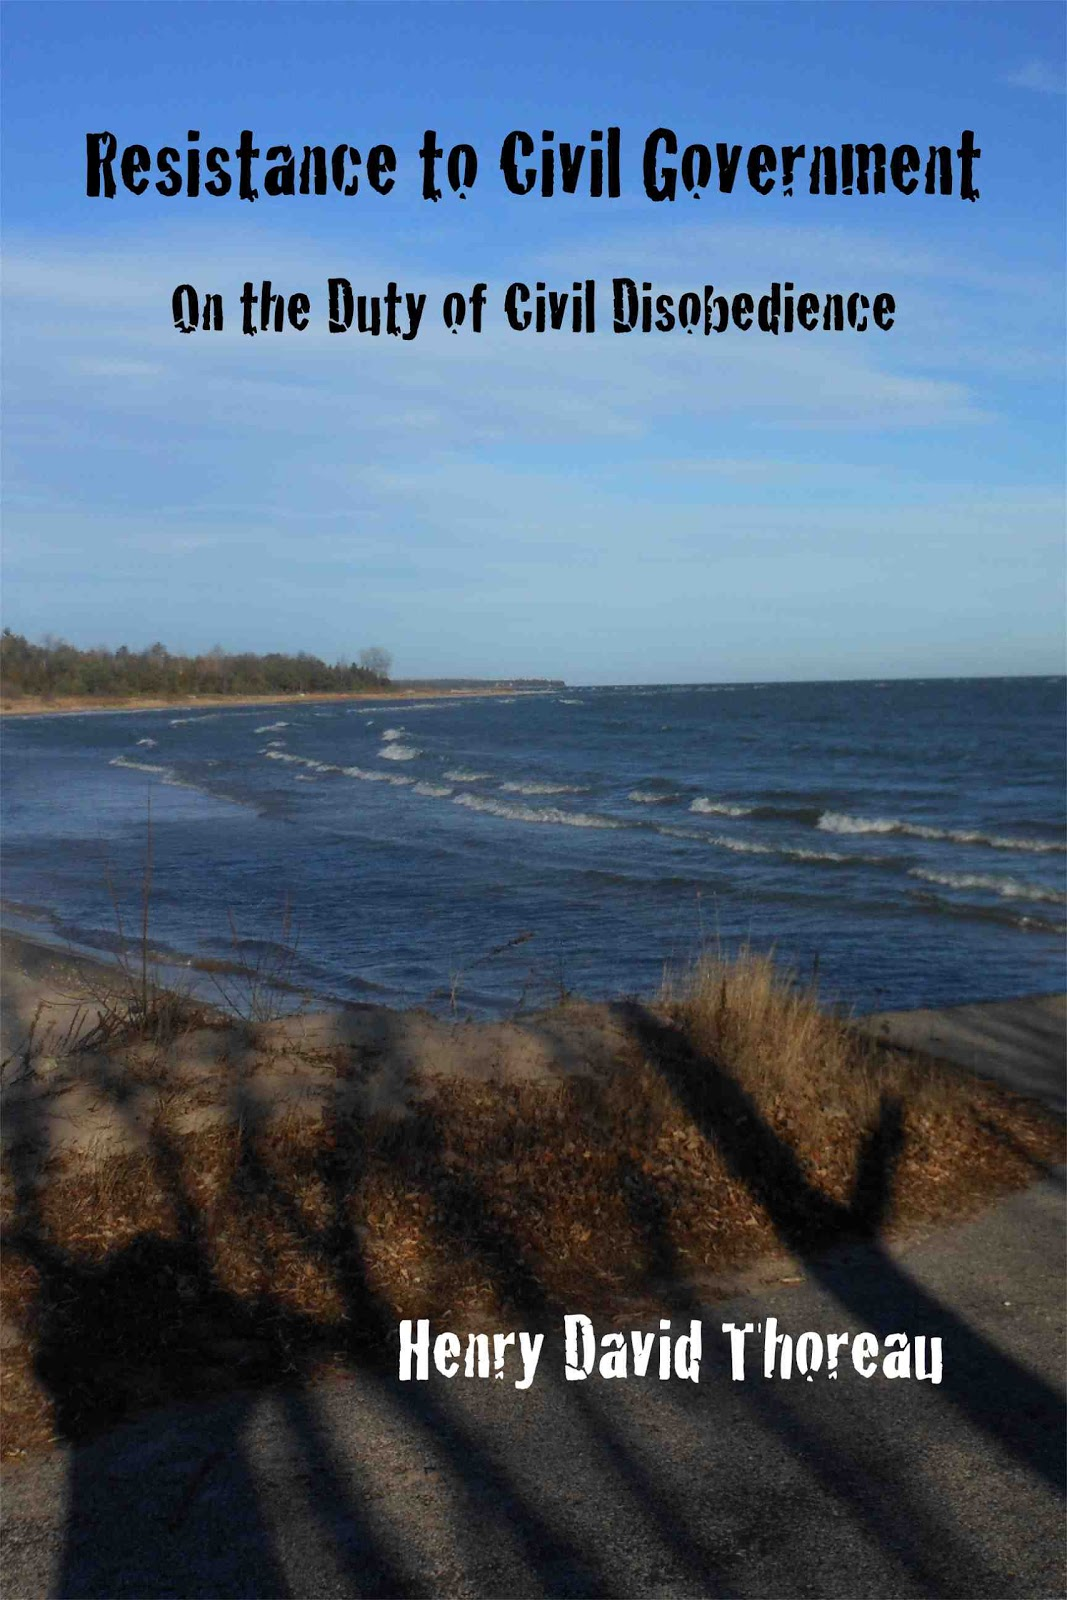 essay on civil disobedience analysis 91 121 113 106 essay on civil disobedience analysis